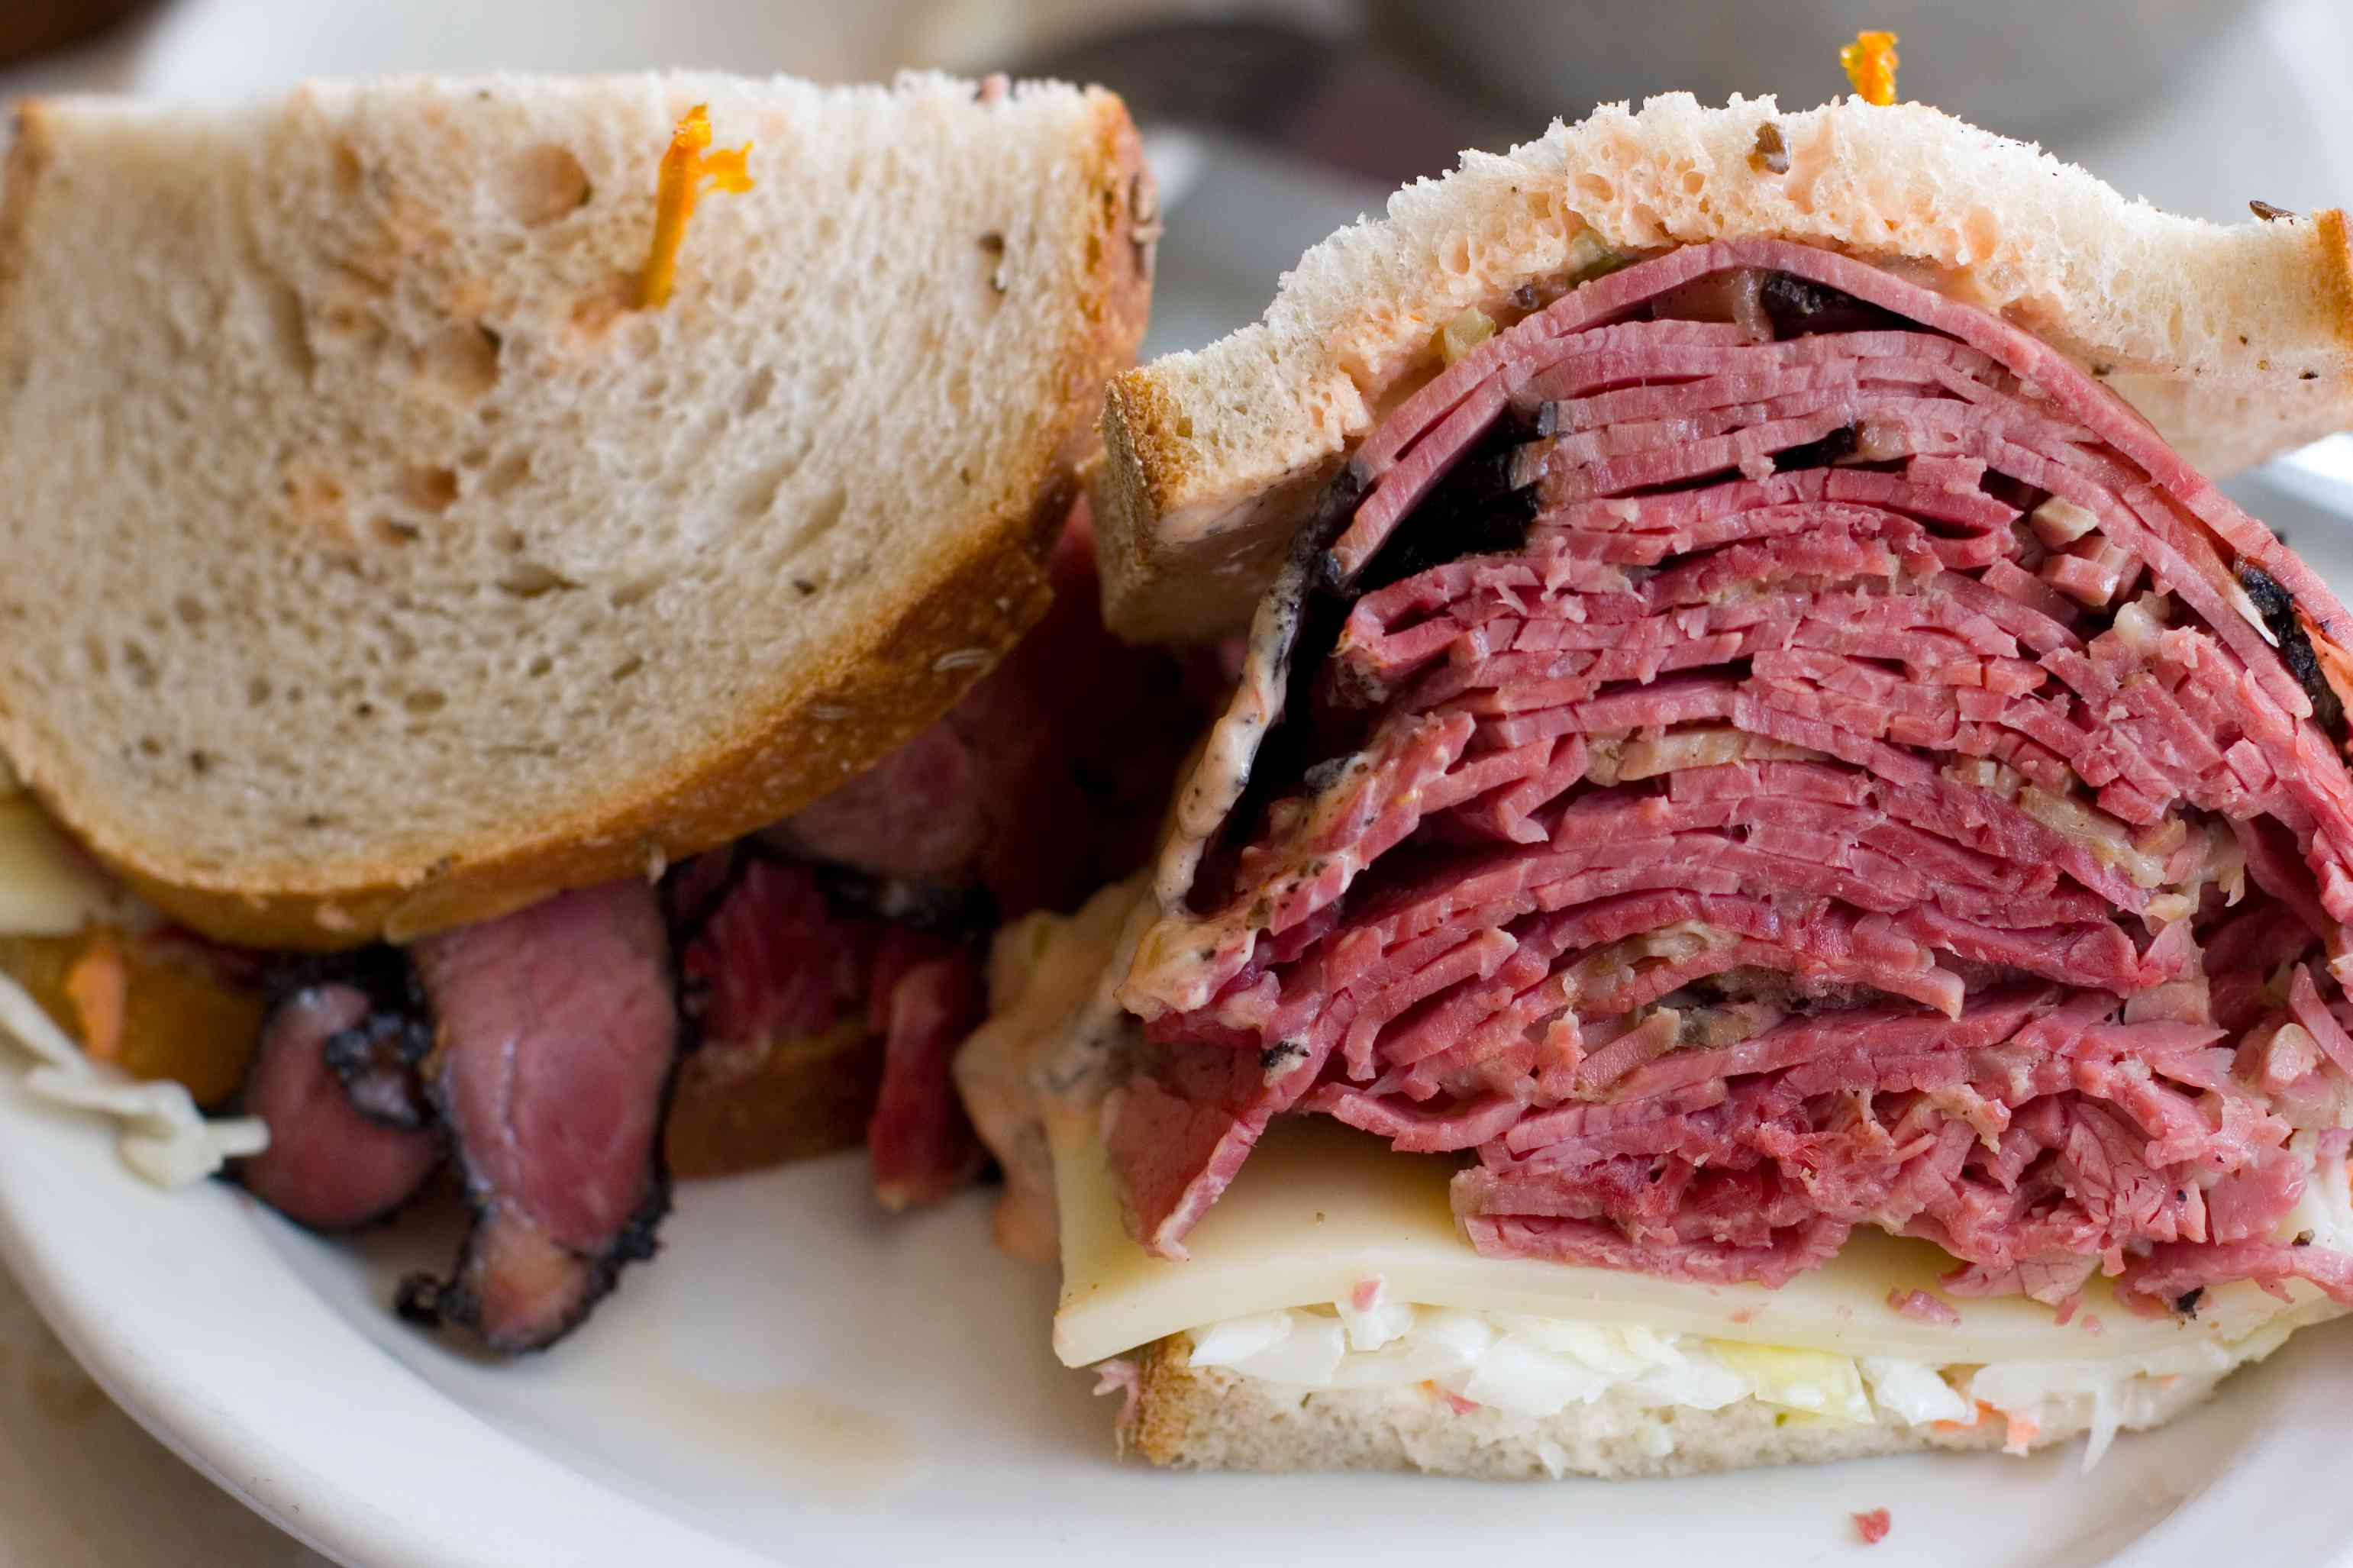 Corned beef and pastrami at Artie's Deli, Upper West Side